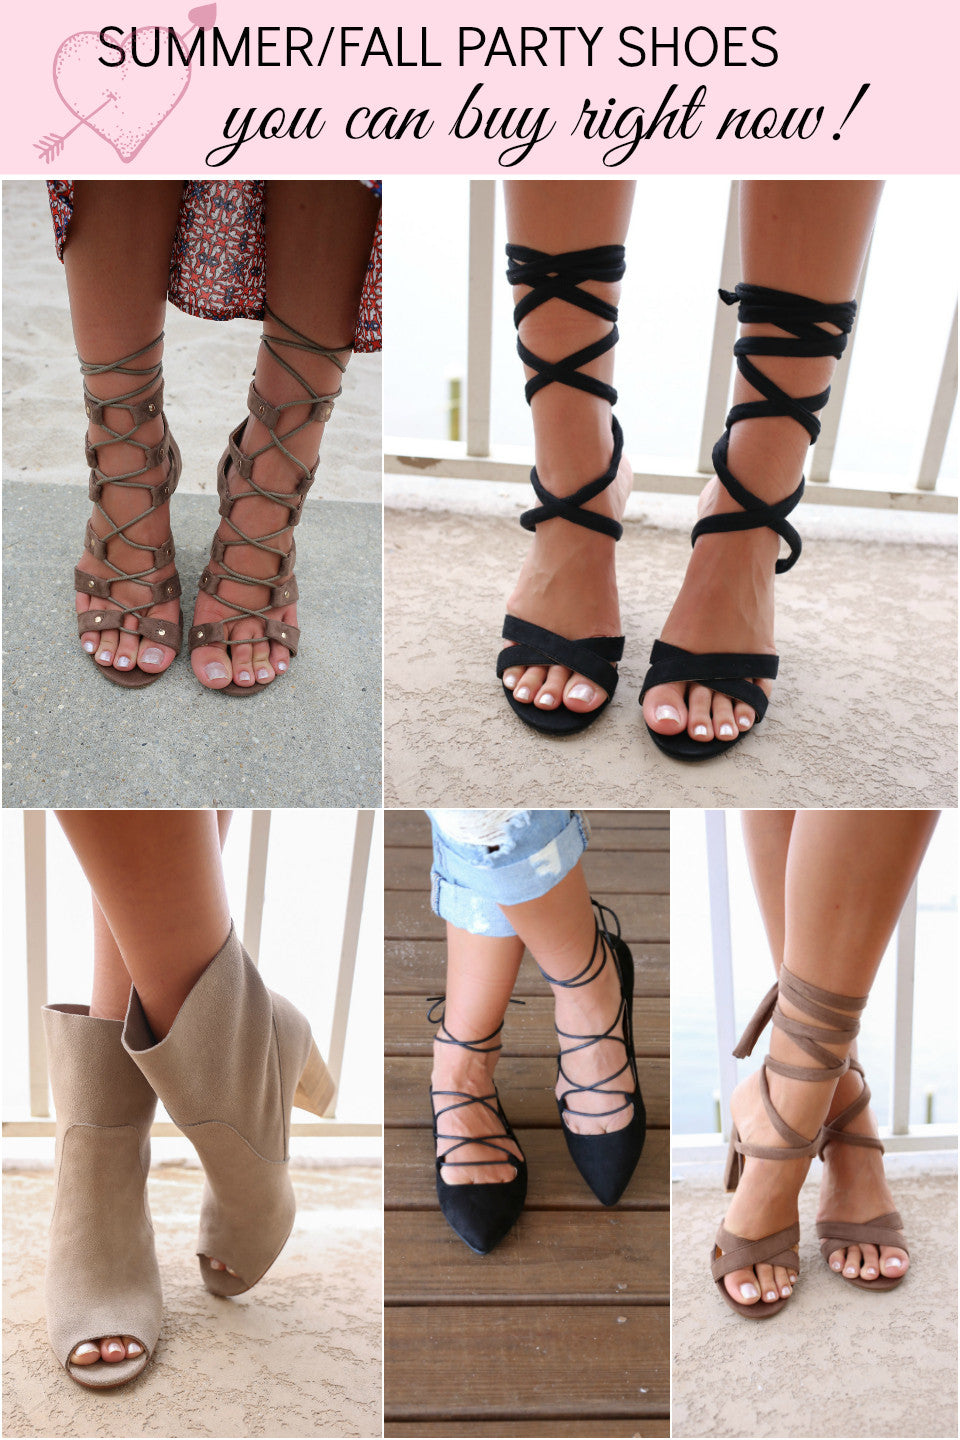 Summer/Fall Party Shoes You Can Buy Right Now!